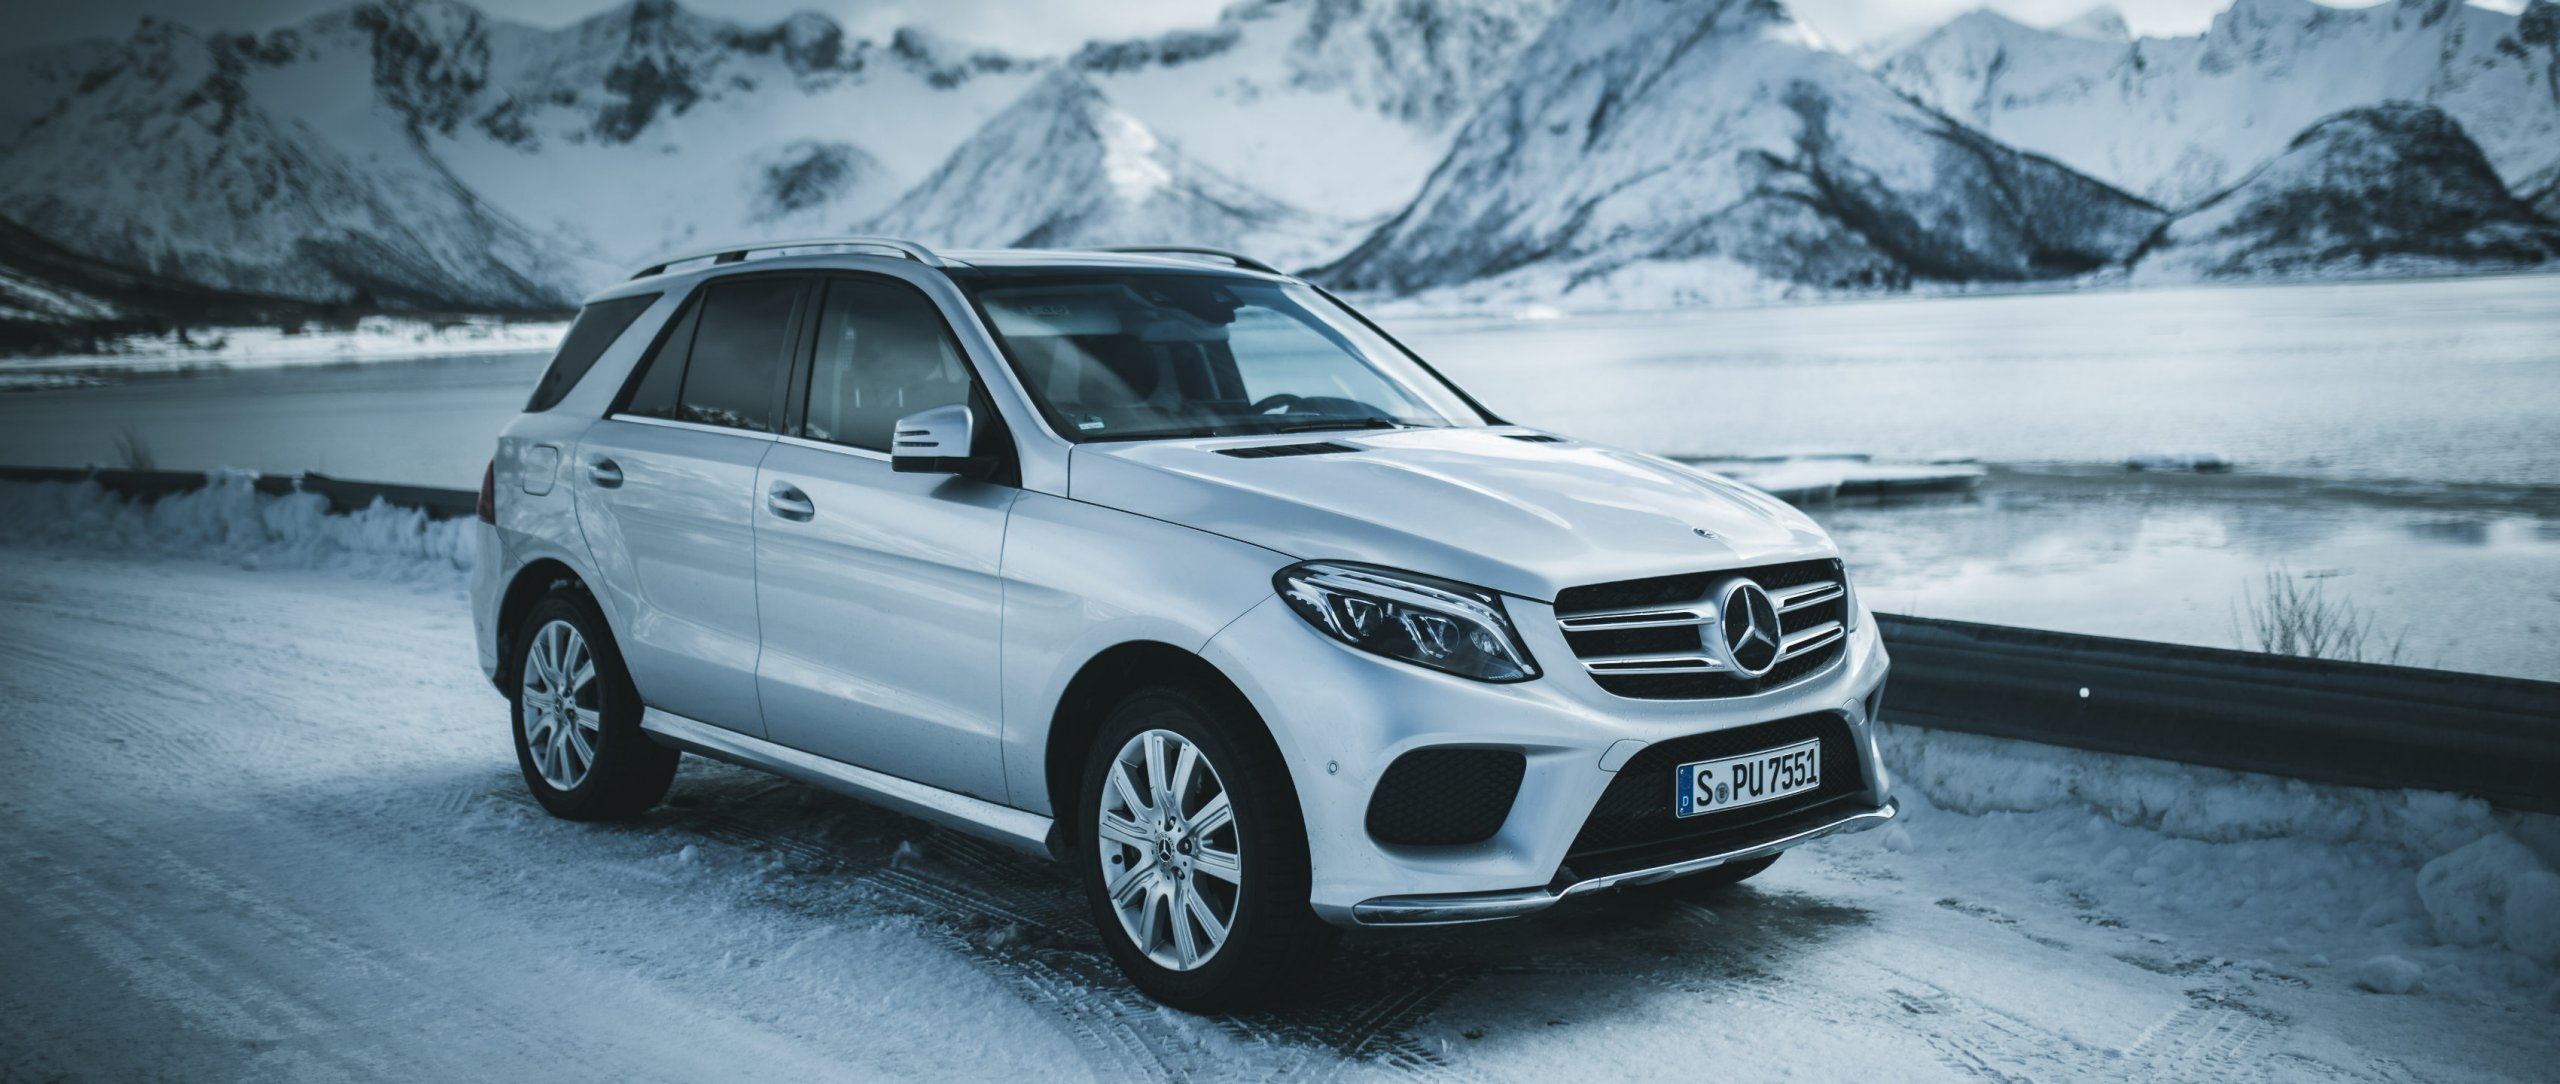 Mercedes-Benz: #MBvideocar – In this episode, Luca Jaenichen explores the fascinating landscape of Norway with the Mercedes-Benz GLE.